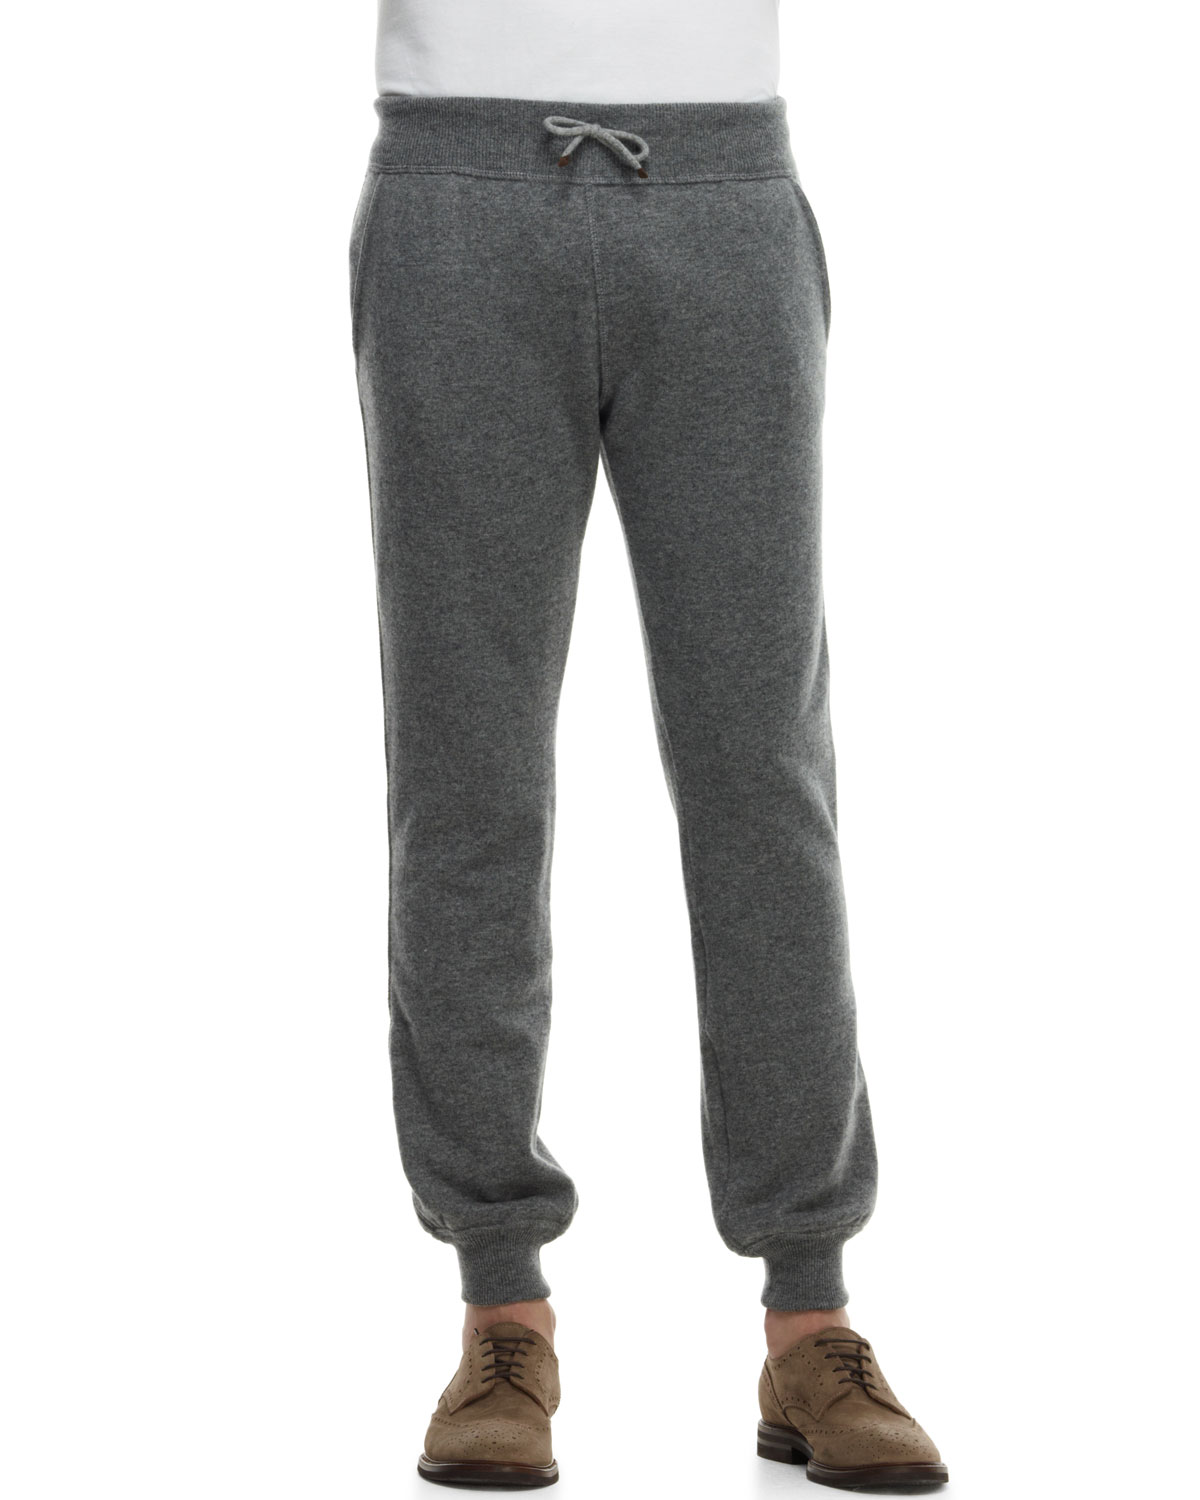 Mens Cashmere Cuffed Track Pants   Brunello Cucinelli   Mdgrey (XL/54)